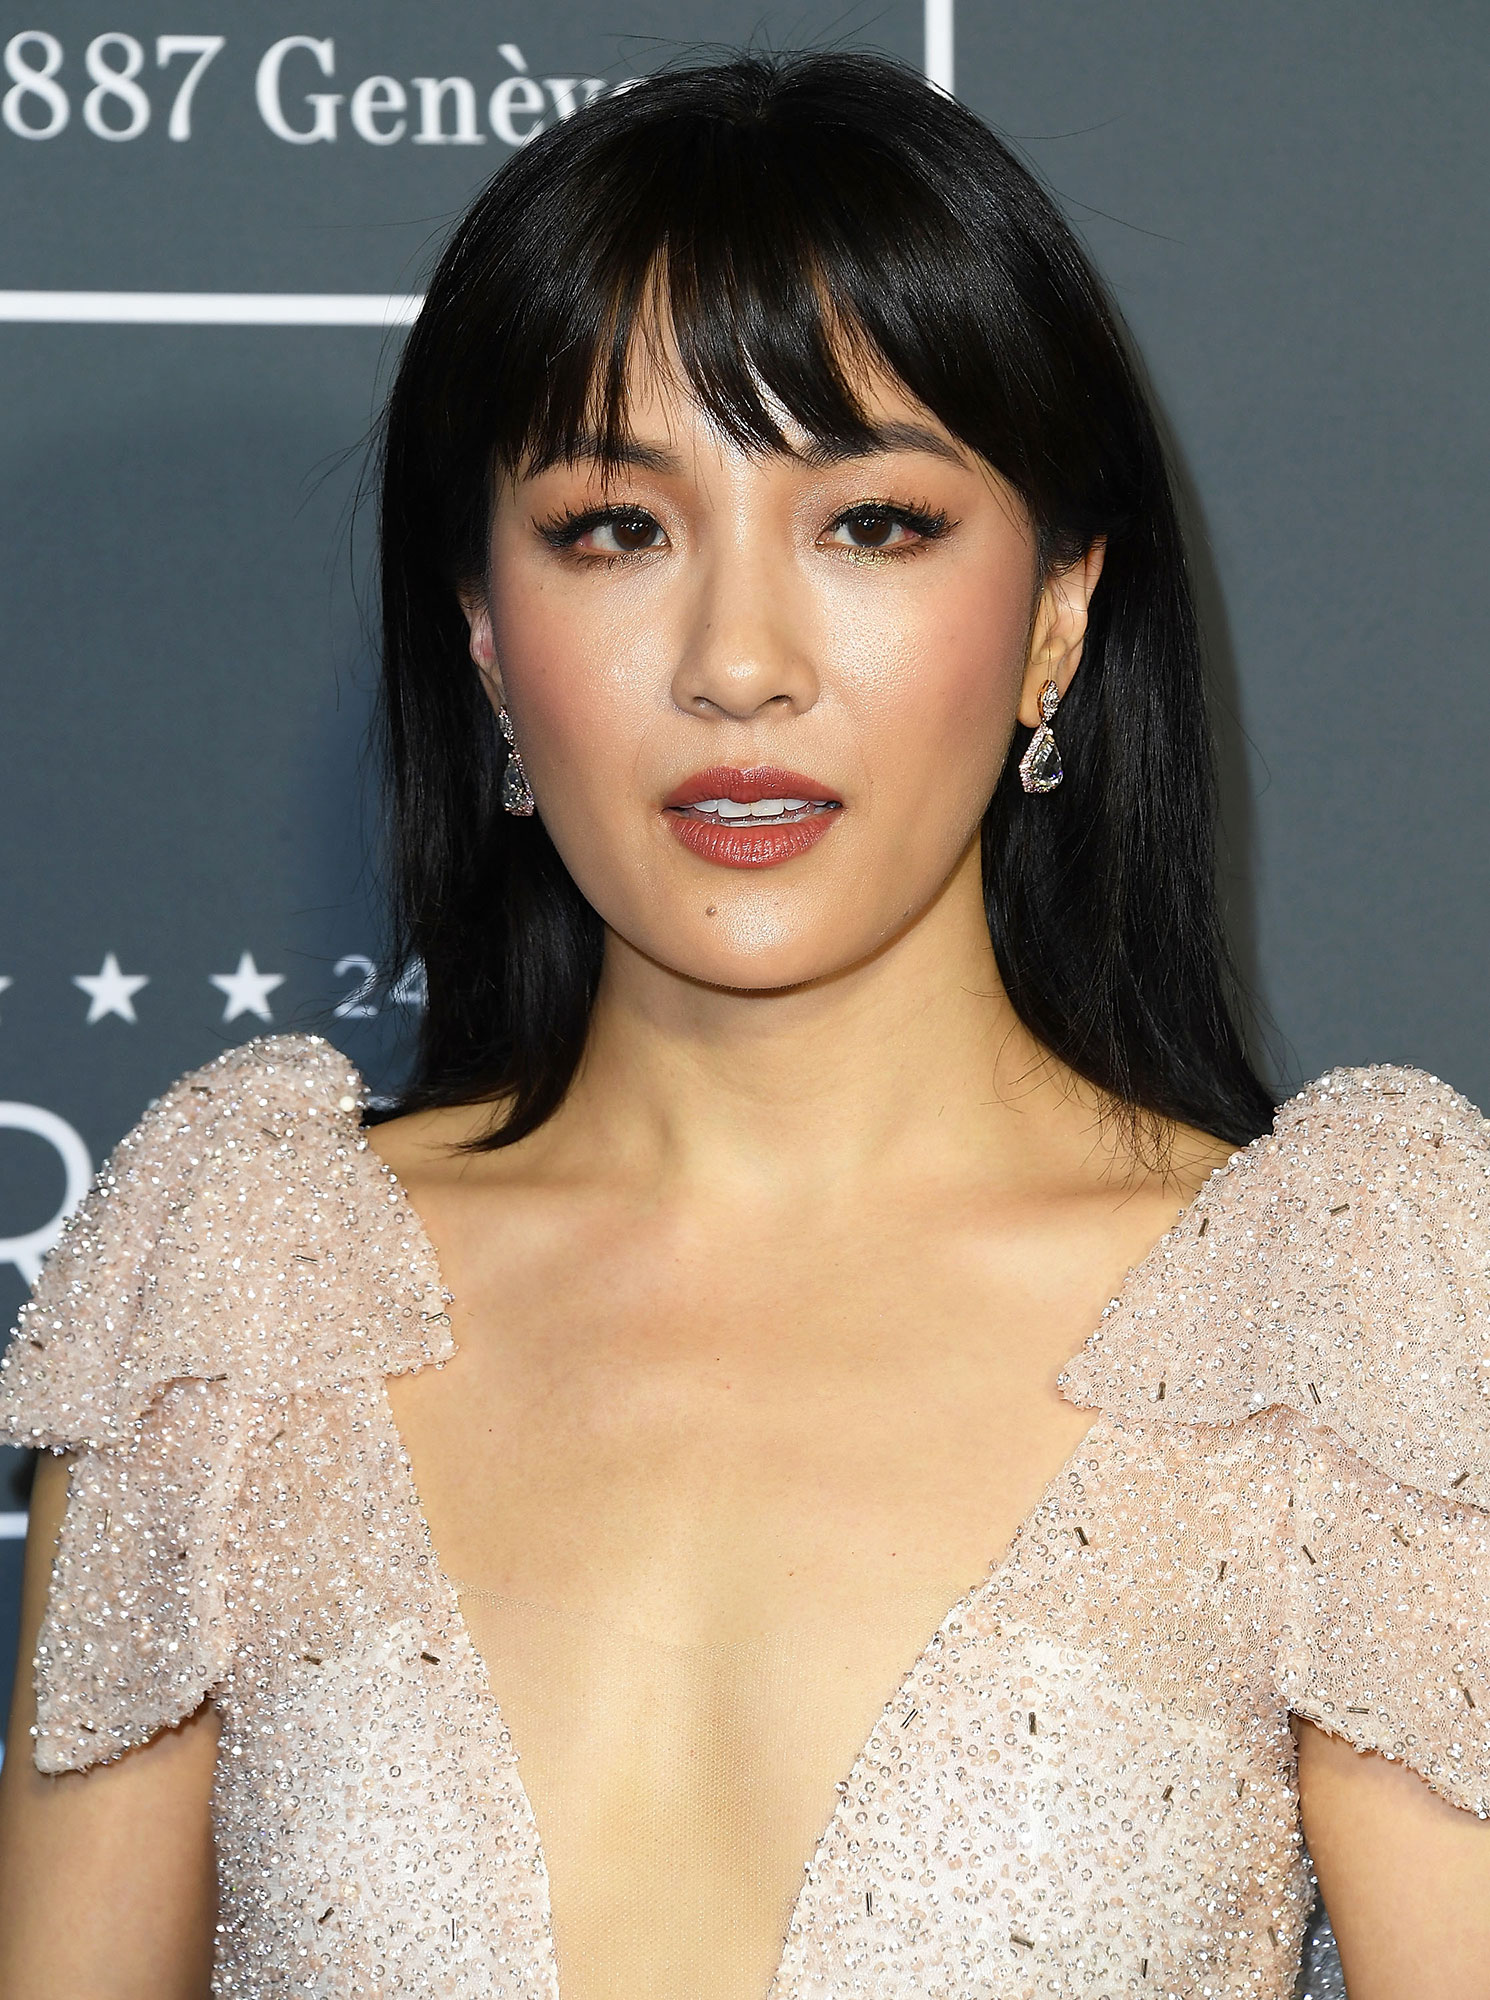 Constance Wu Celebrity Bangs: Fierce Fringe Inspo For Your Next Haircut - At the 2019 Critics Choice Awards, celeb hairstylist Derek Yuen used the ghd Natural Bristle Radial Brush to blowout and create a slight bevel at the ends of the Crazy Rich Asians star's piece-y bangs.